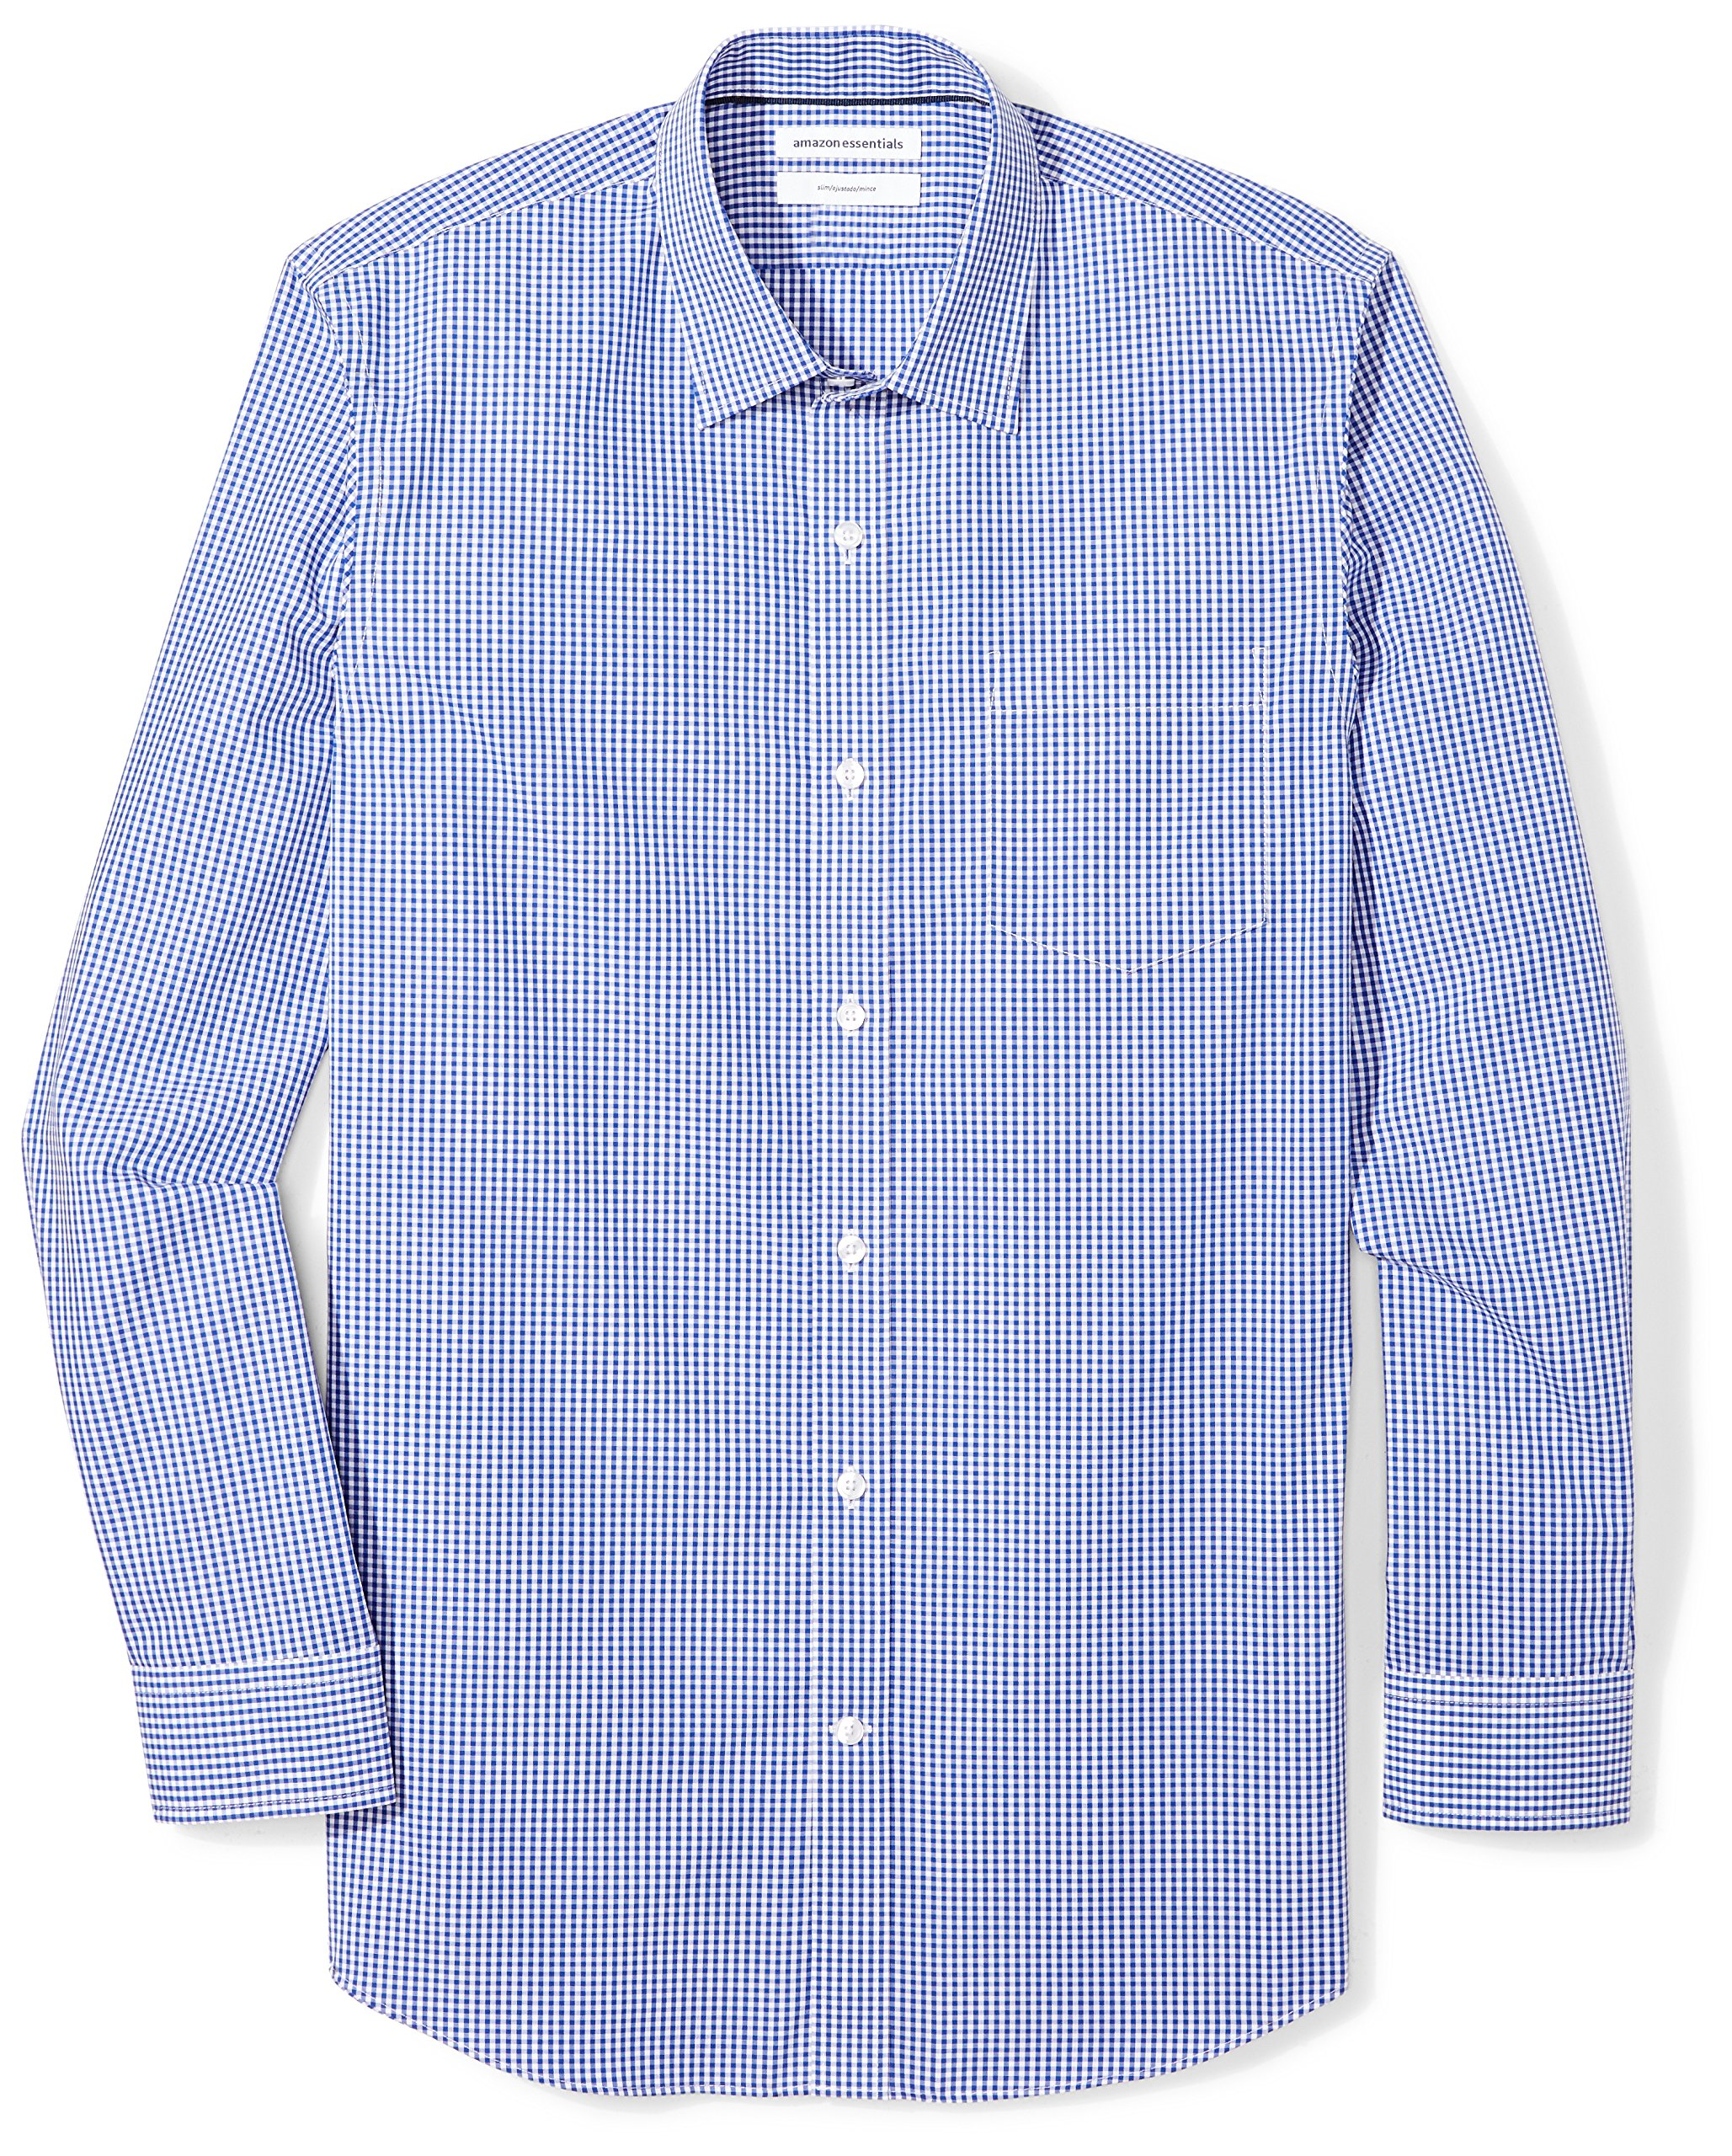 Amazon Essentials Men's Slim-Fit Wrinkle-Resistant Long Plaid Dress Shirt, Blue Gingham, 16.5'' Neck 32''-33'' Sleeve